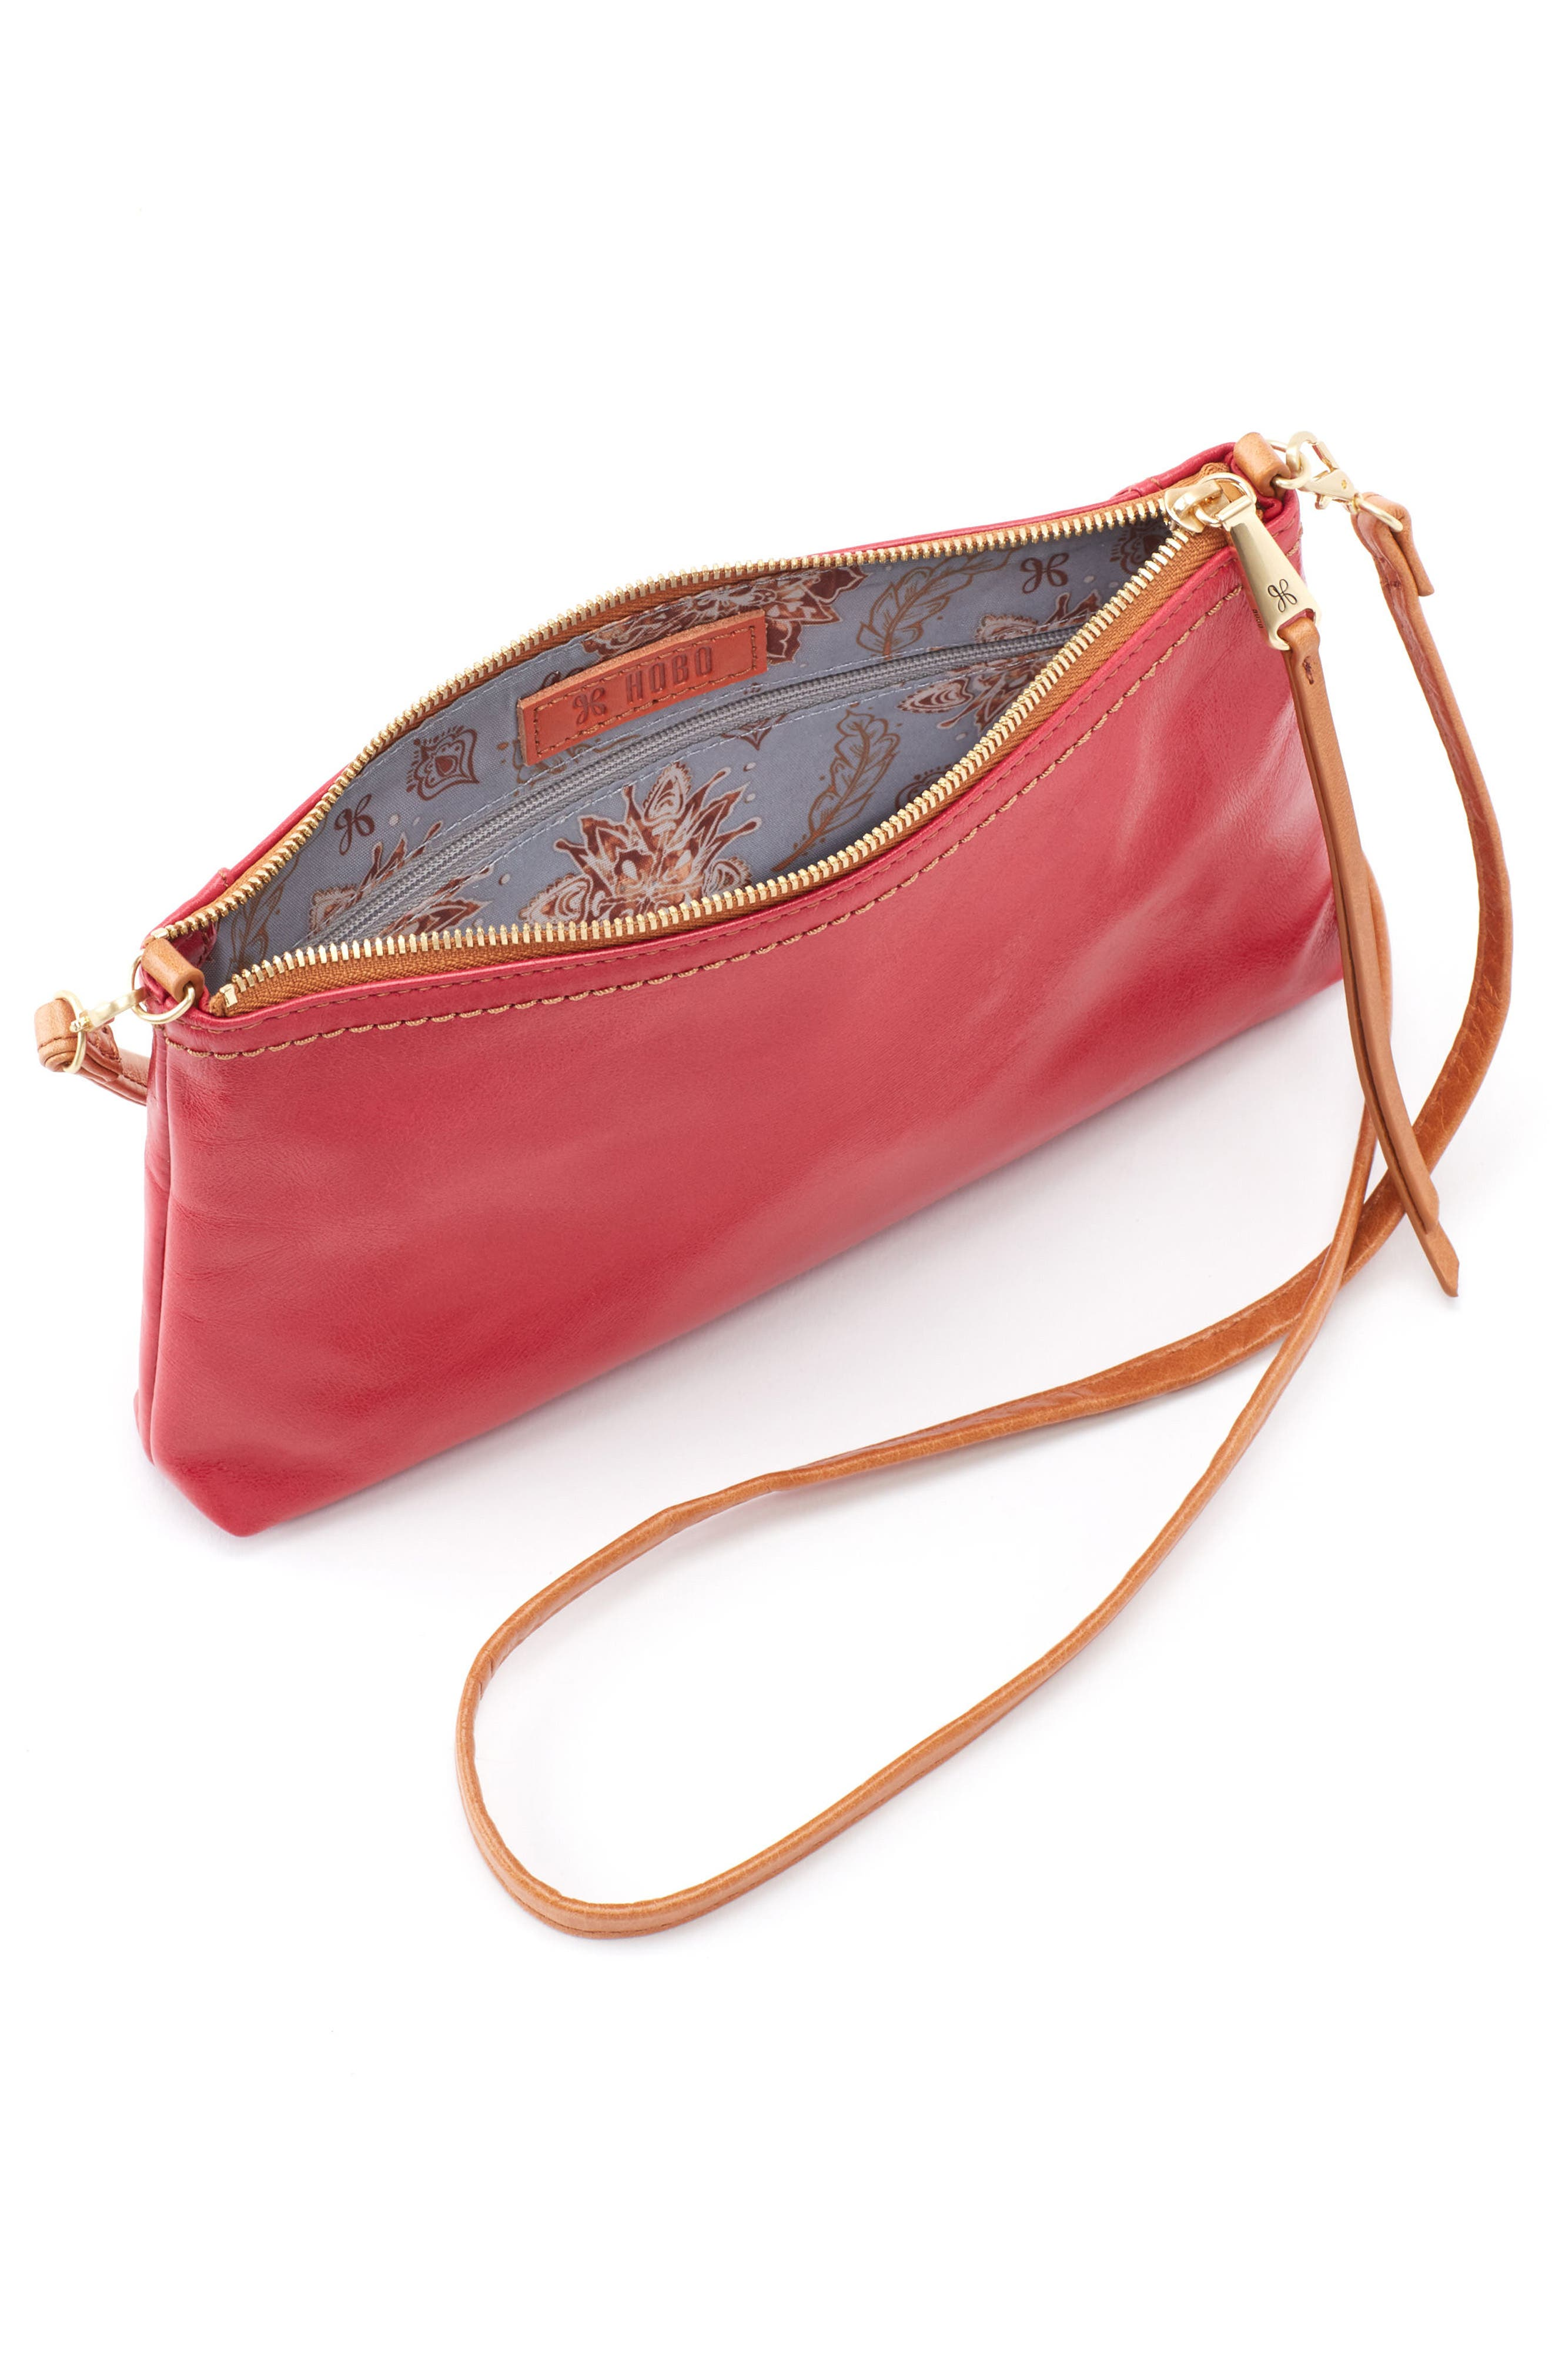 'Darcy' Leather Crossbody Bag,                             Alternate thumbnail 58, color,